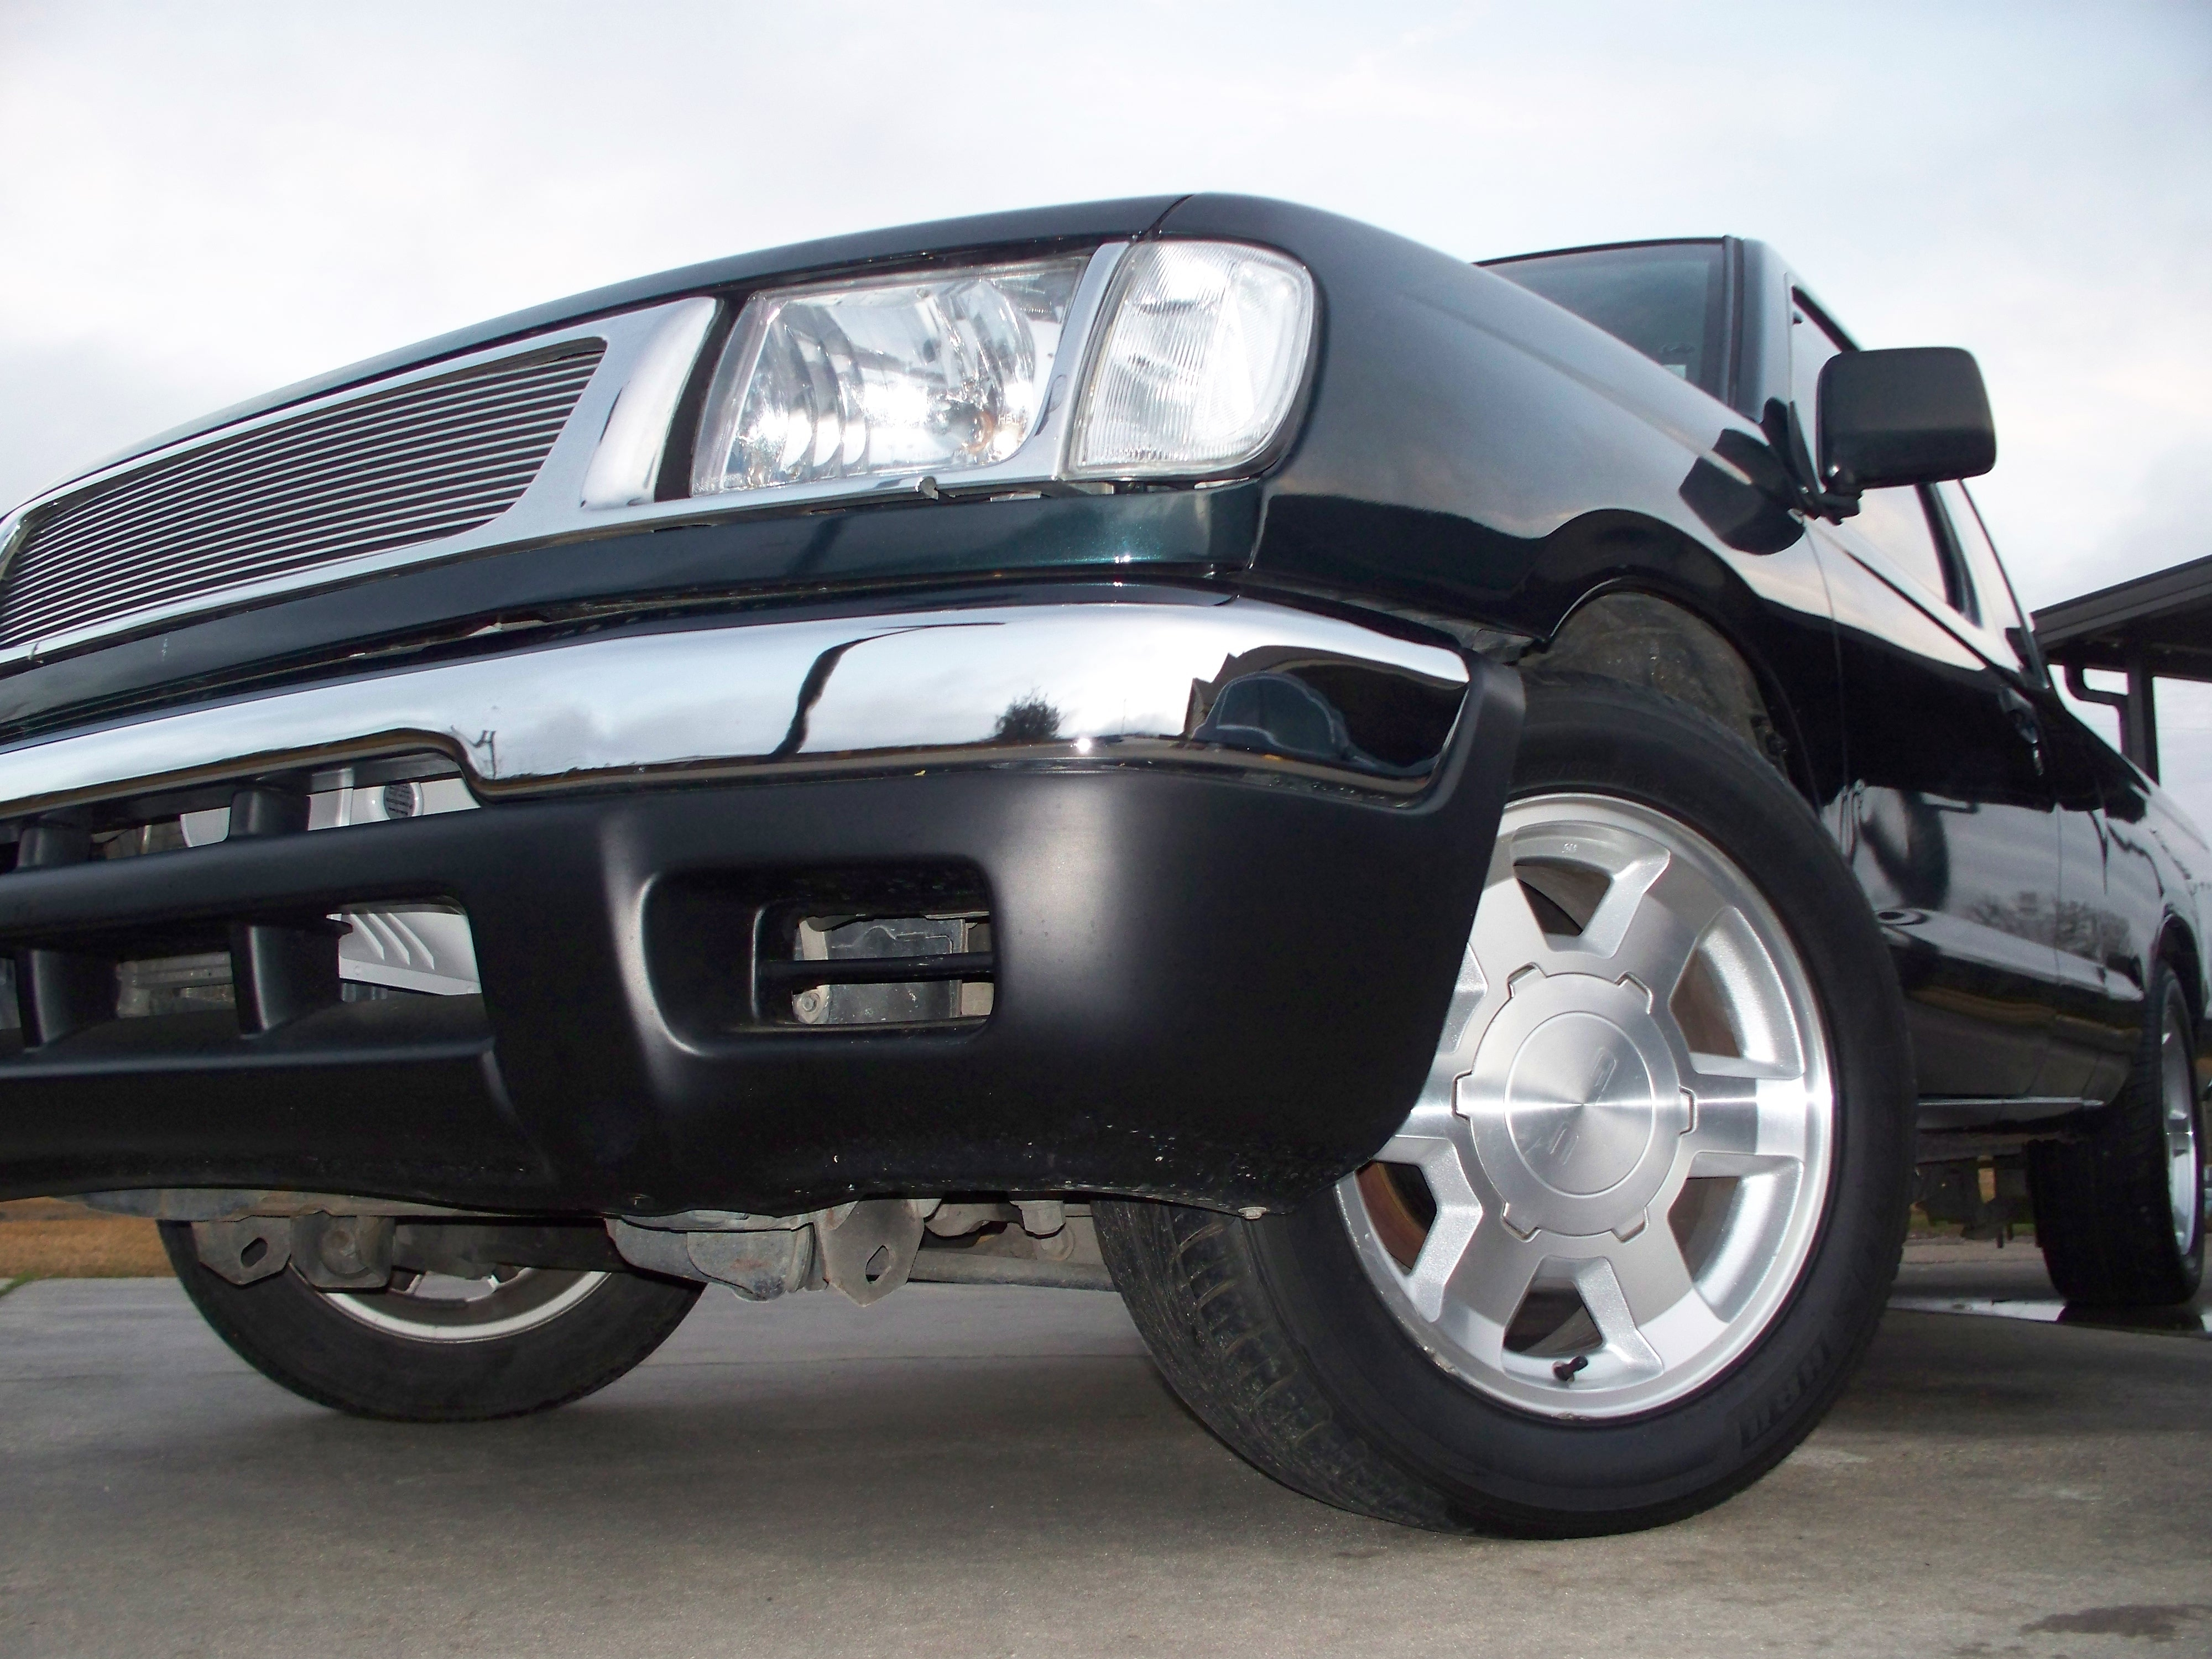 TCarlin 1999 Nissan Frontier Regular Cab Specs s Modification